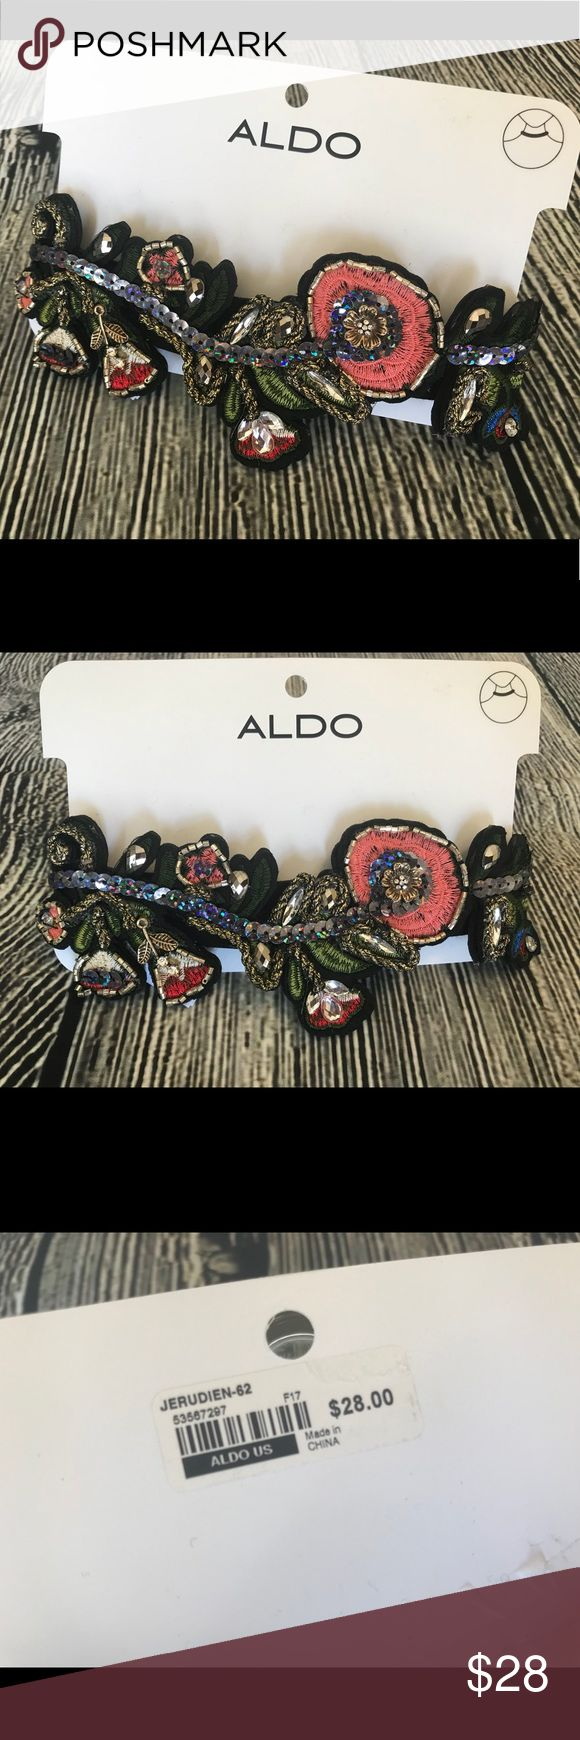 💐Aldo Statement Embroidered Choker Necklace💐 Aldo Statement Embroidered Choker Necklace. Adjustable. New with Tags. Aldo Jewelry Necklaces